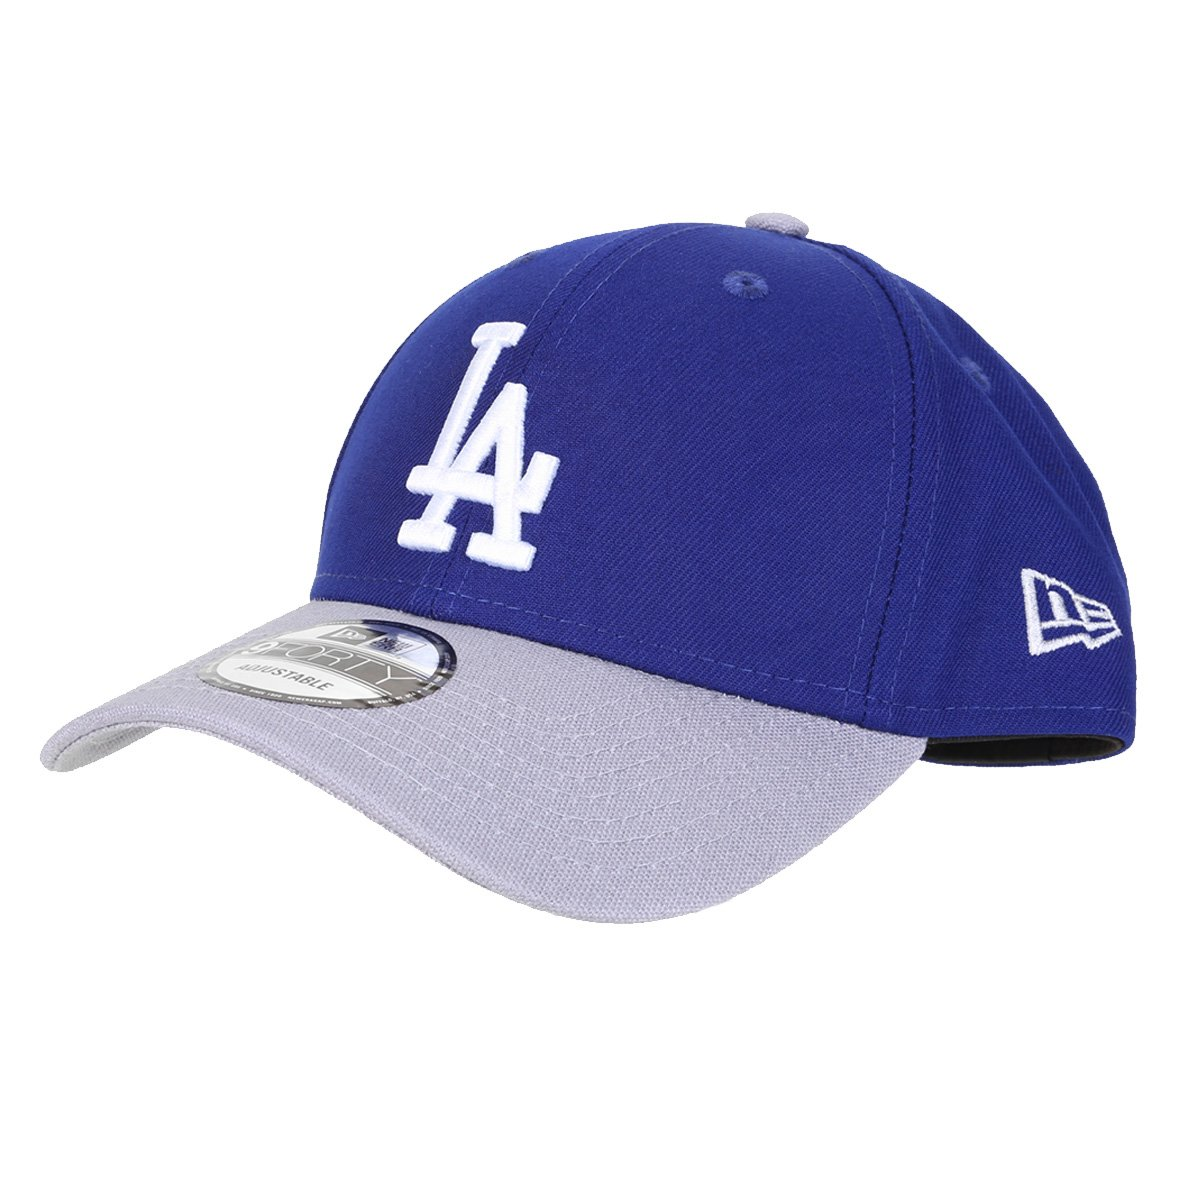 Boné New Era MLB Los Angeles Dodgers Aba Curva Snapback 9Fifty